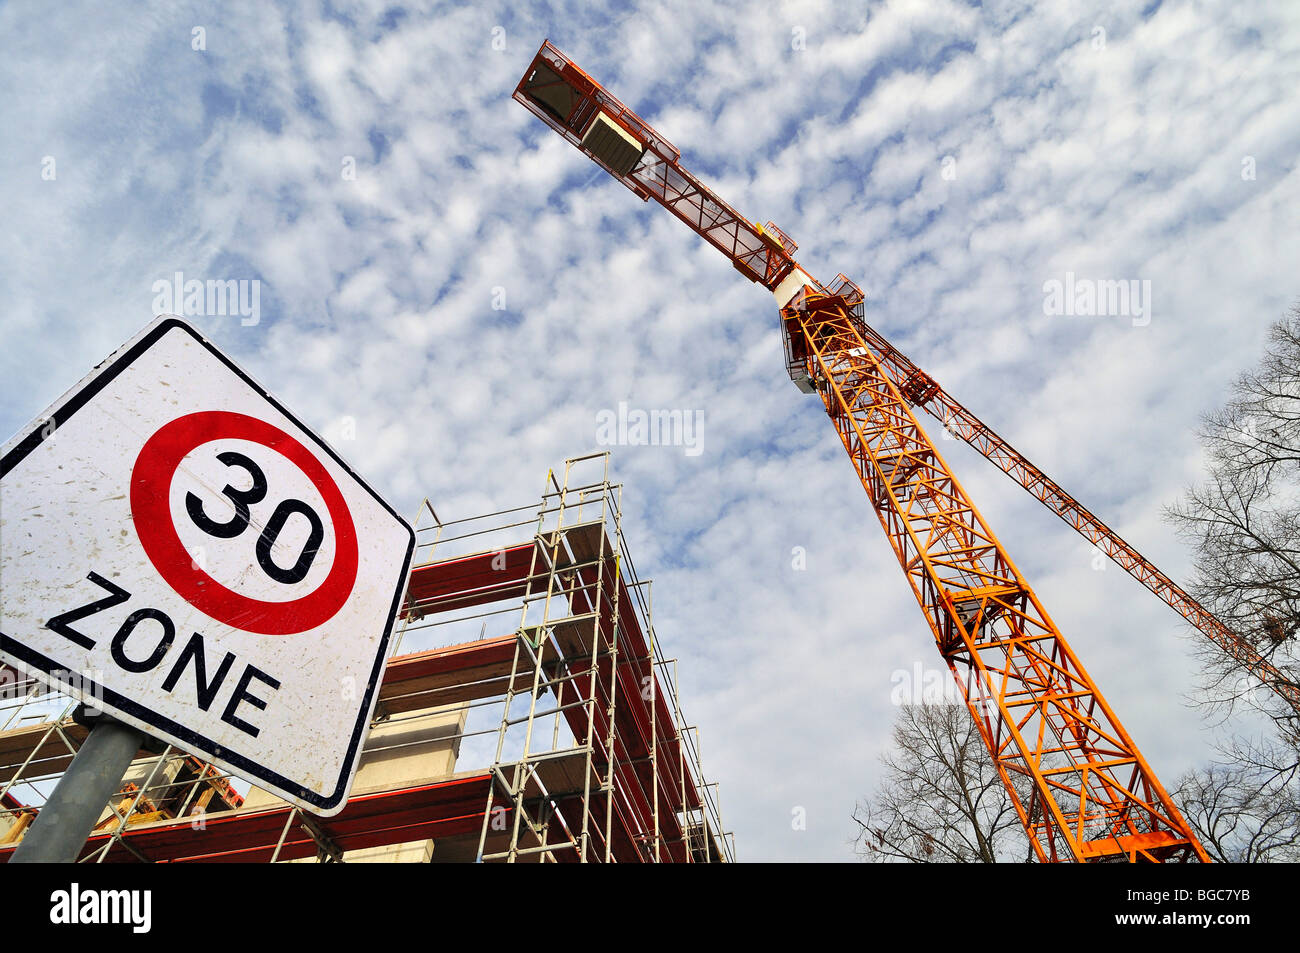 Building under construction with scaffolding, crane and 30-zone sign, Munich, Bavaria, Germany, Europe - Stock Image